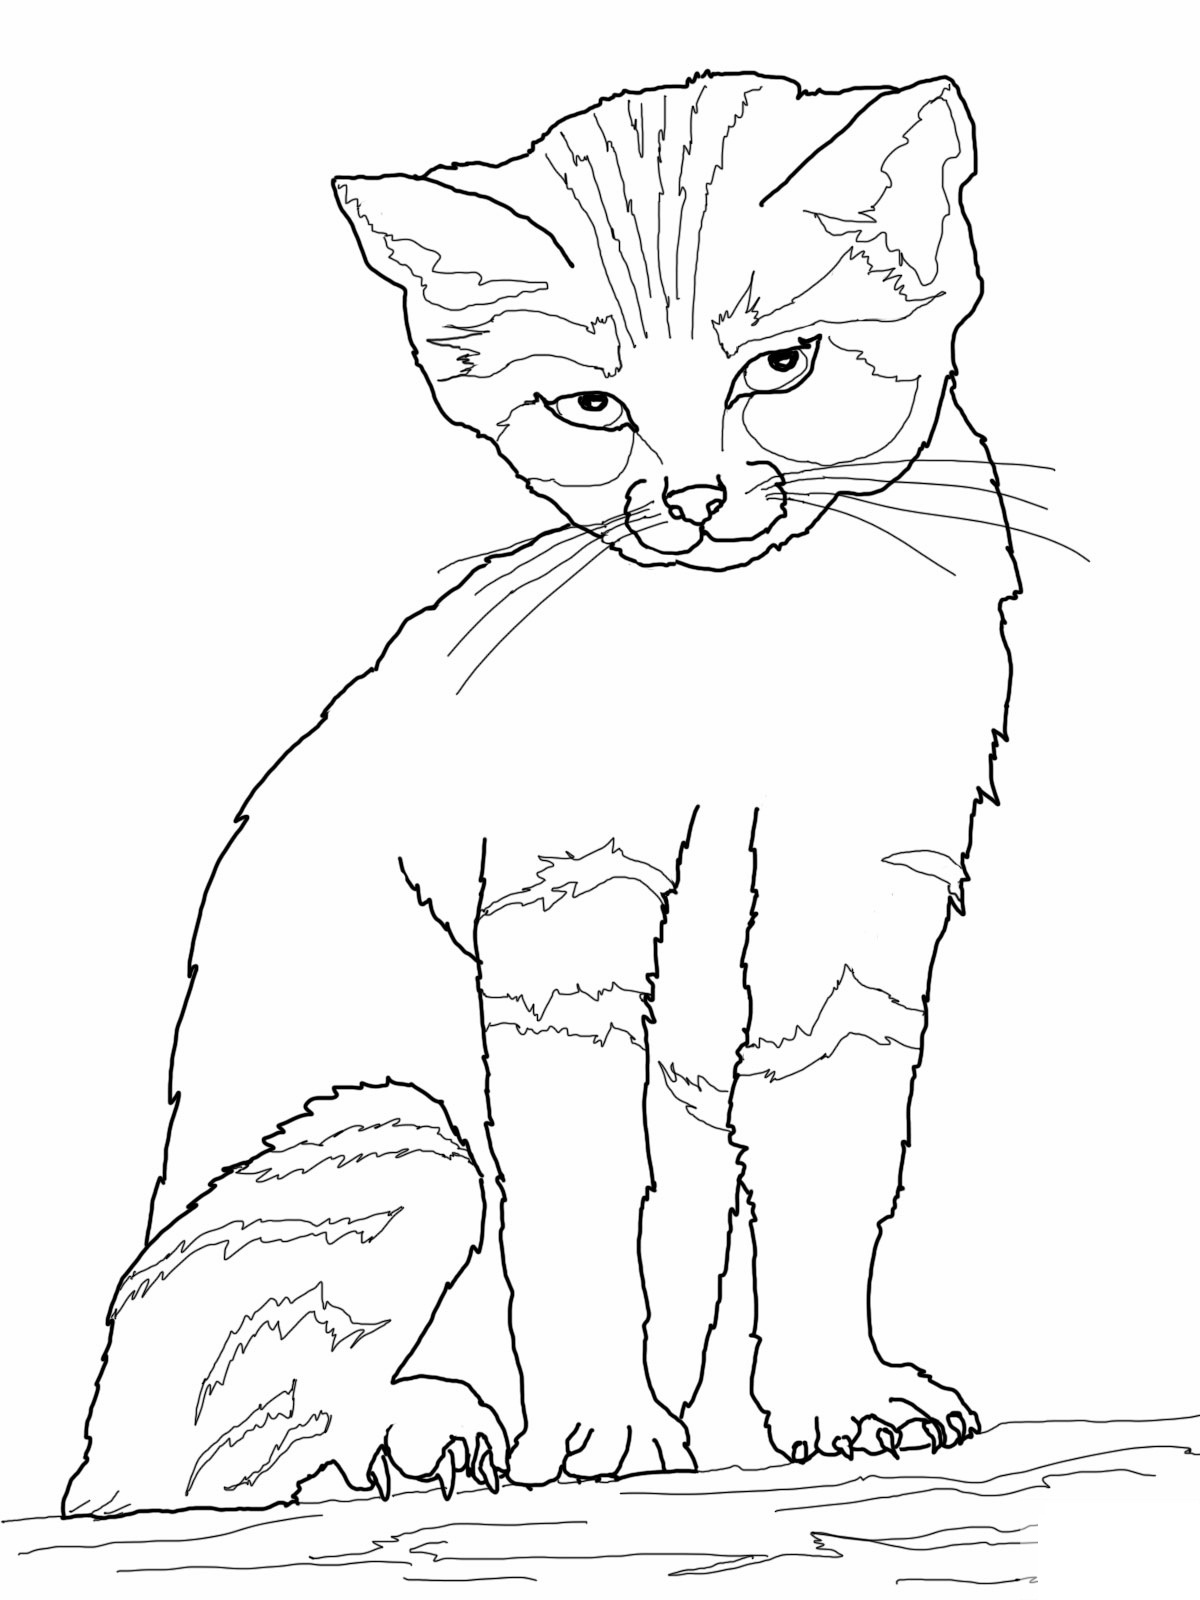 kitten coloring pictures printable top 30 free printable cat coloring pages for kids coloring printable kitten pictures